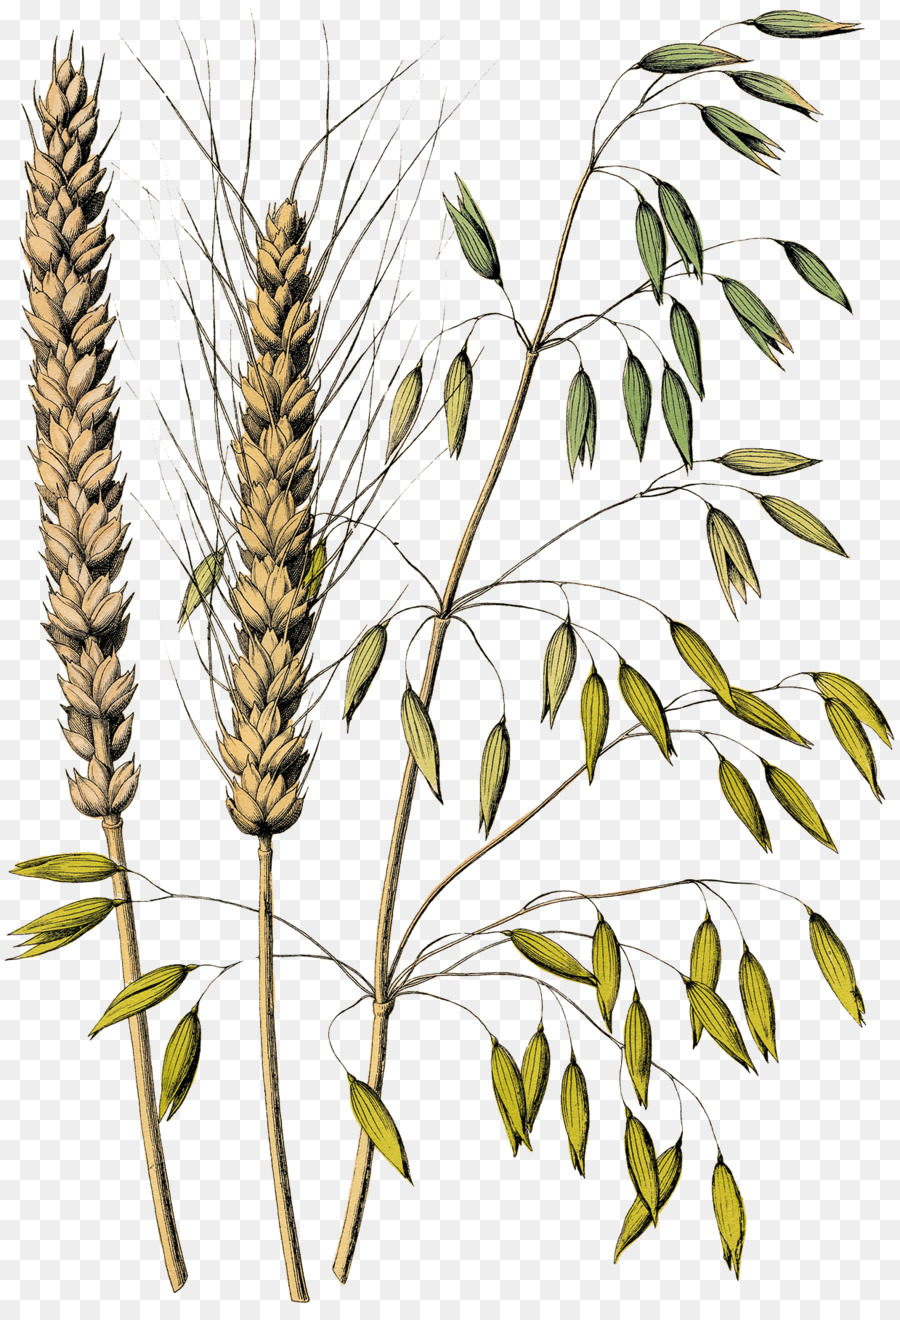 Family tree background oatmeal. Wheat clipart oat